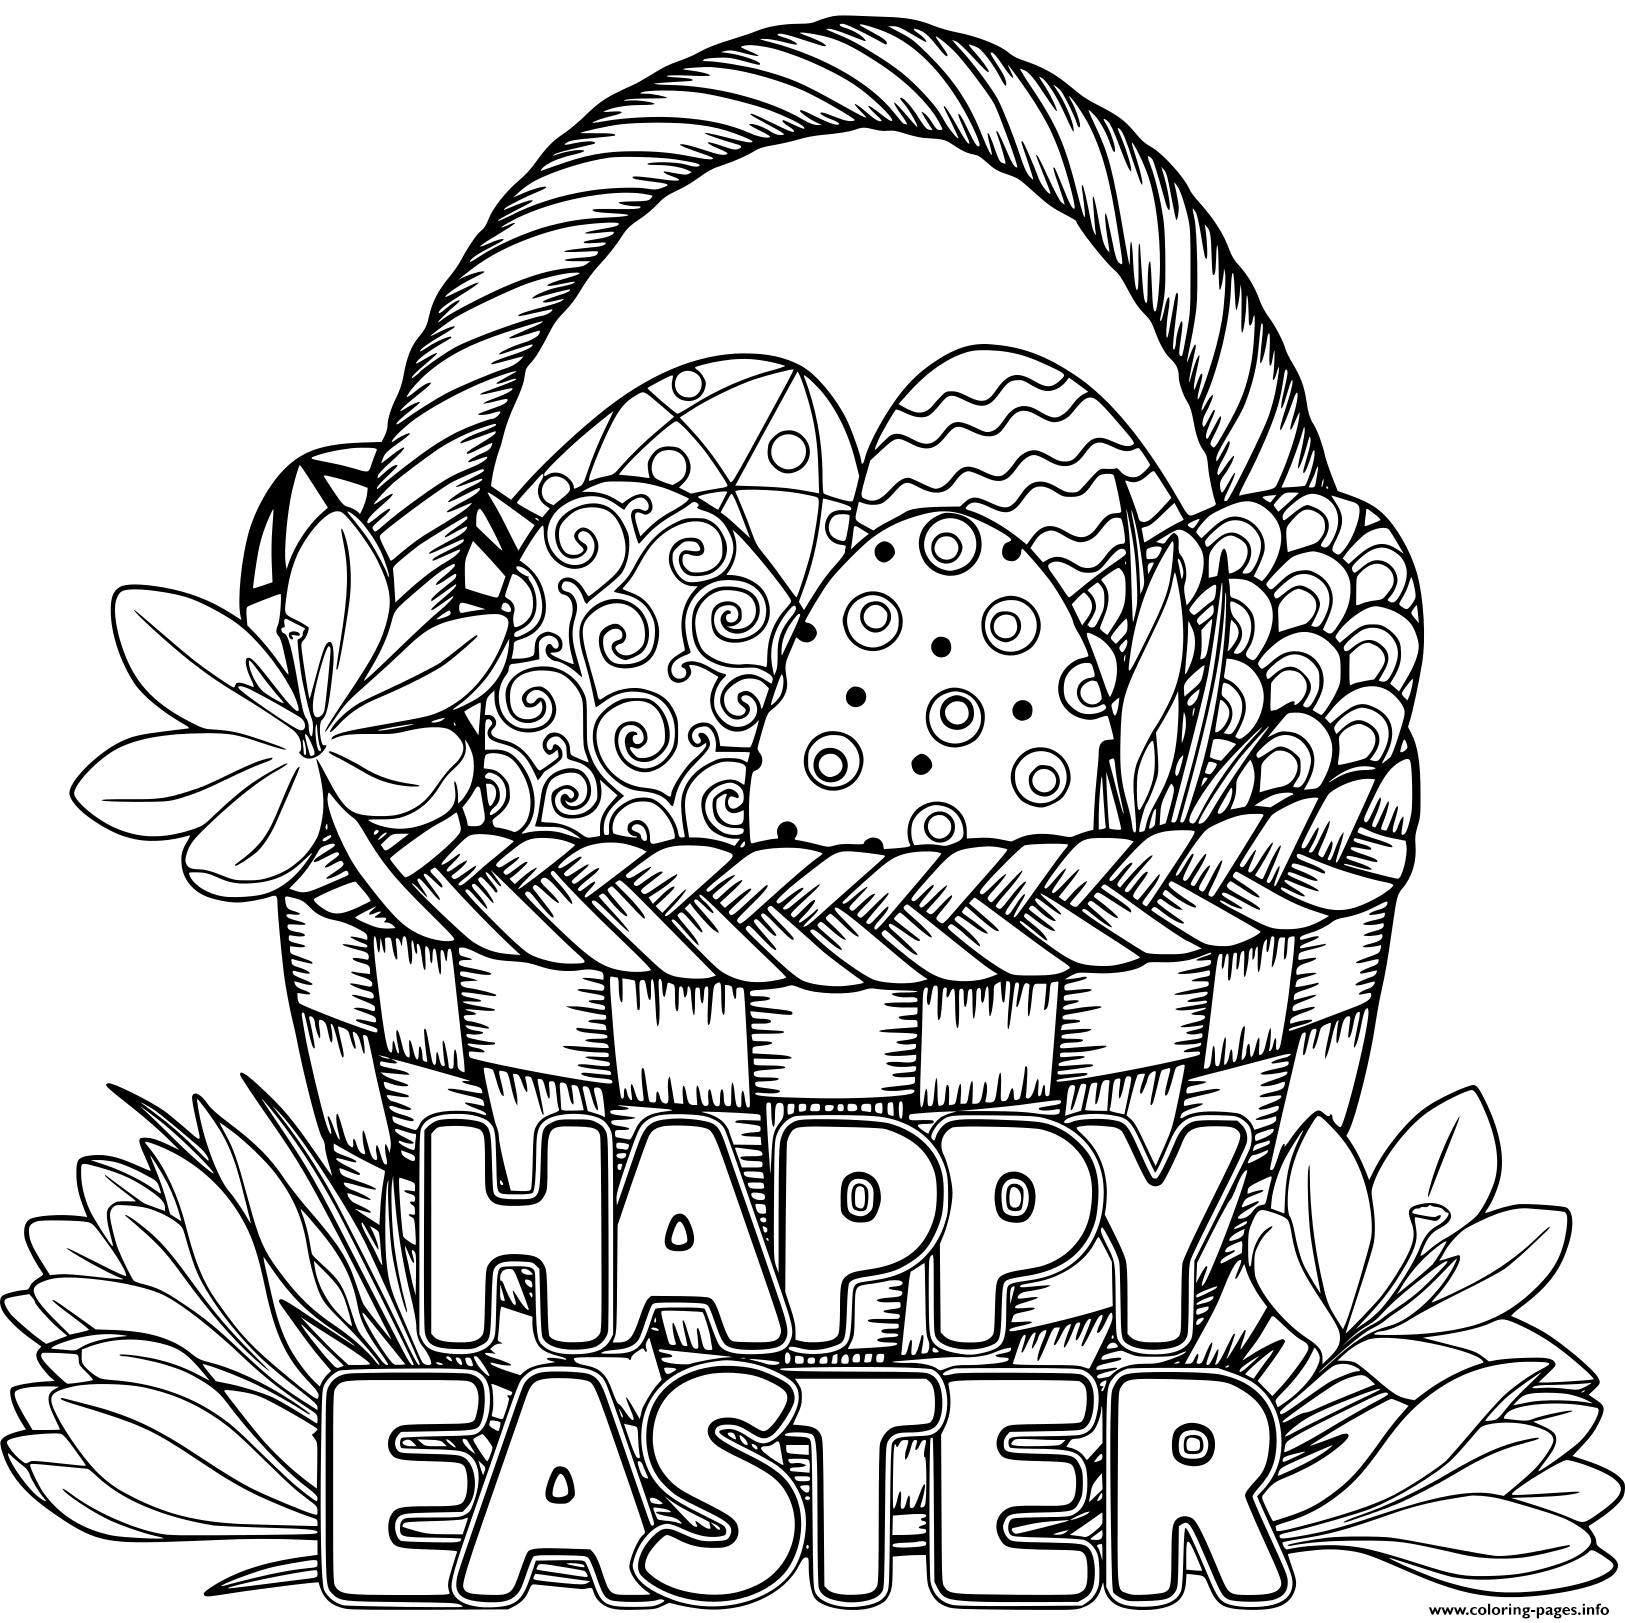 basket of easter eggs coloring page free printable easter egg coloring pages for kids of basket coloring eggs page easter